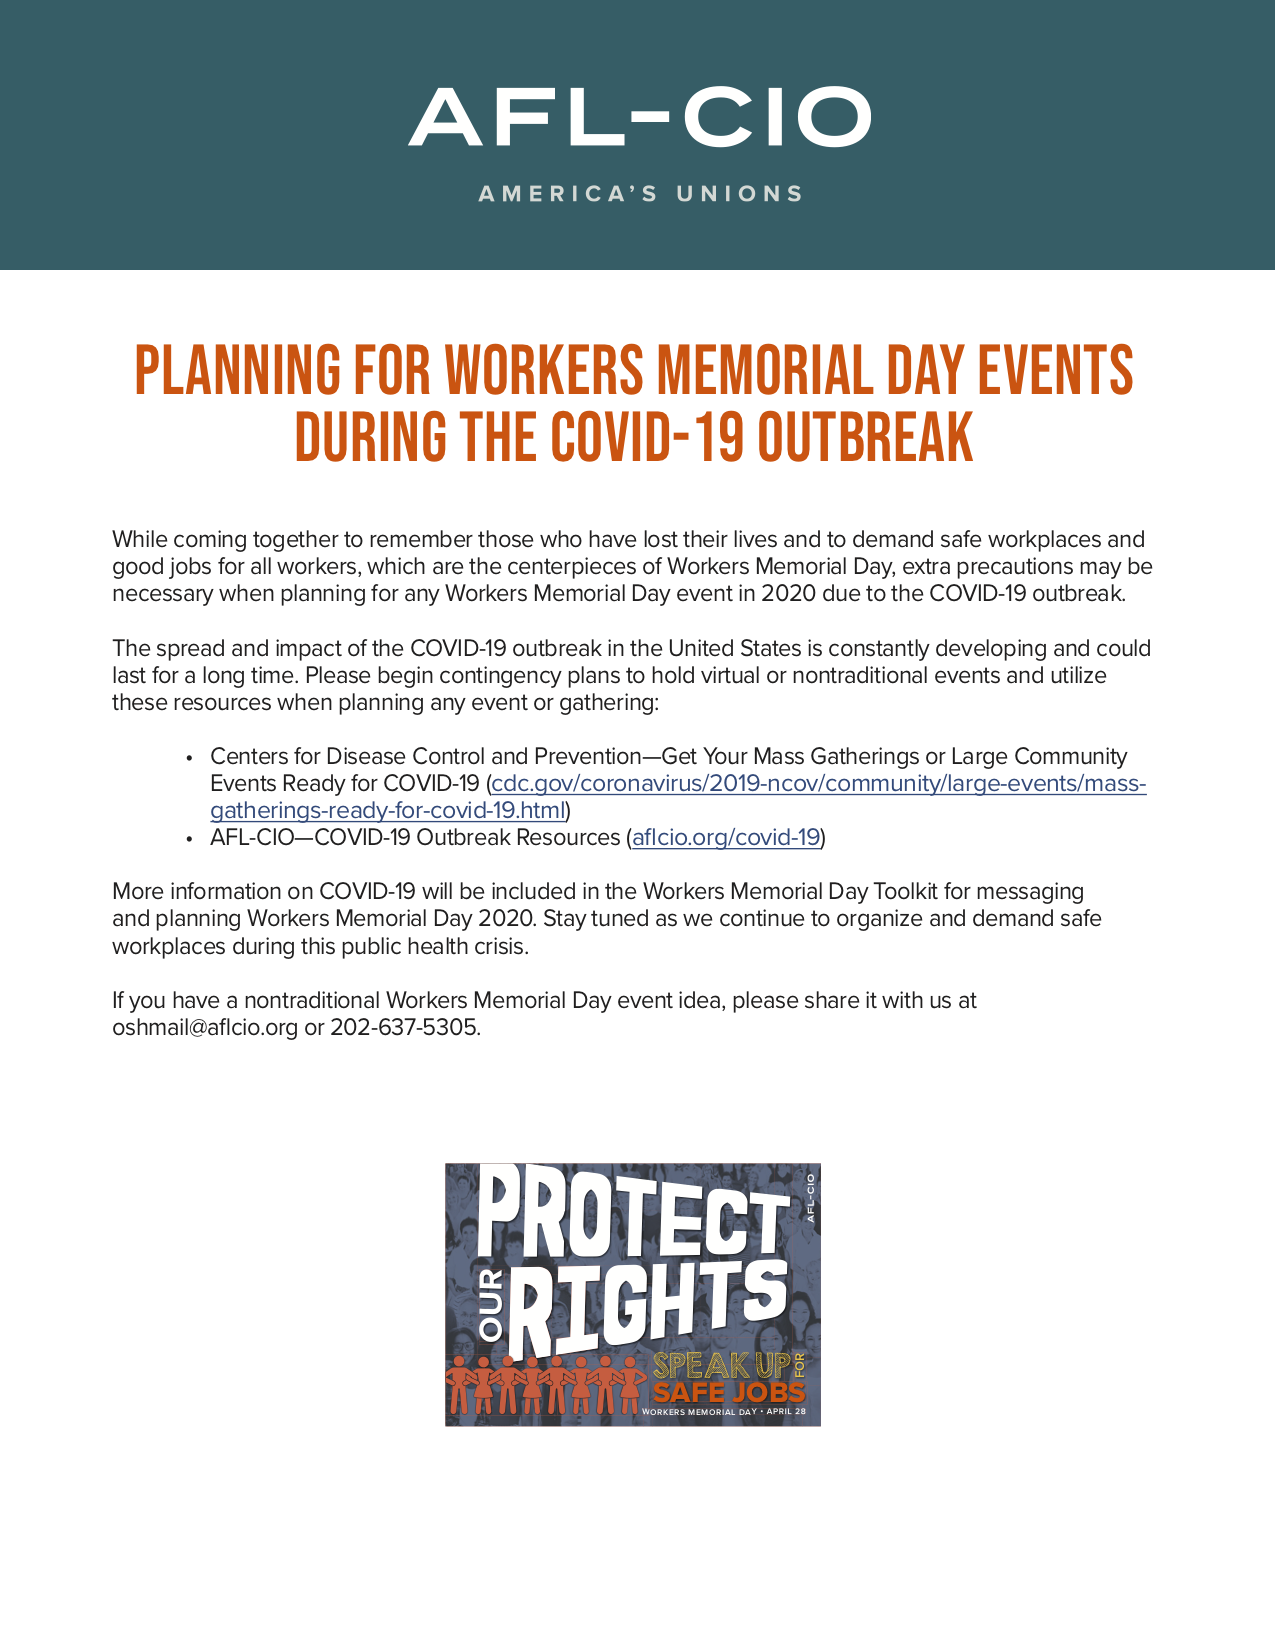 Planning for Workers Memorial Day Events During the COVID-19 Outbreak